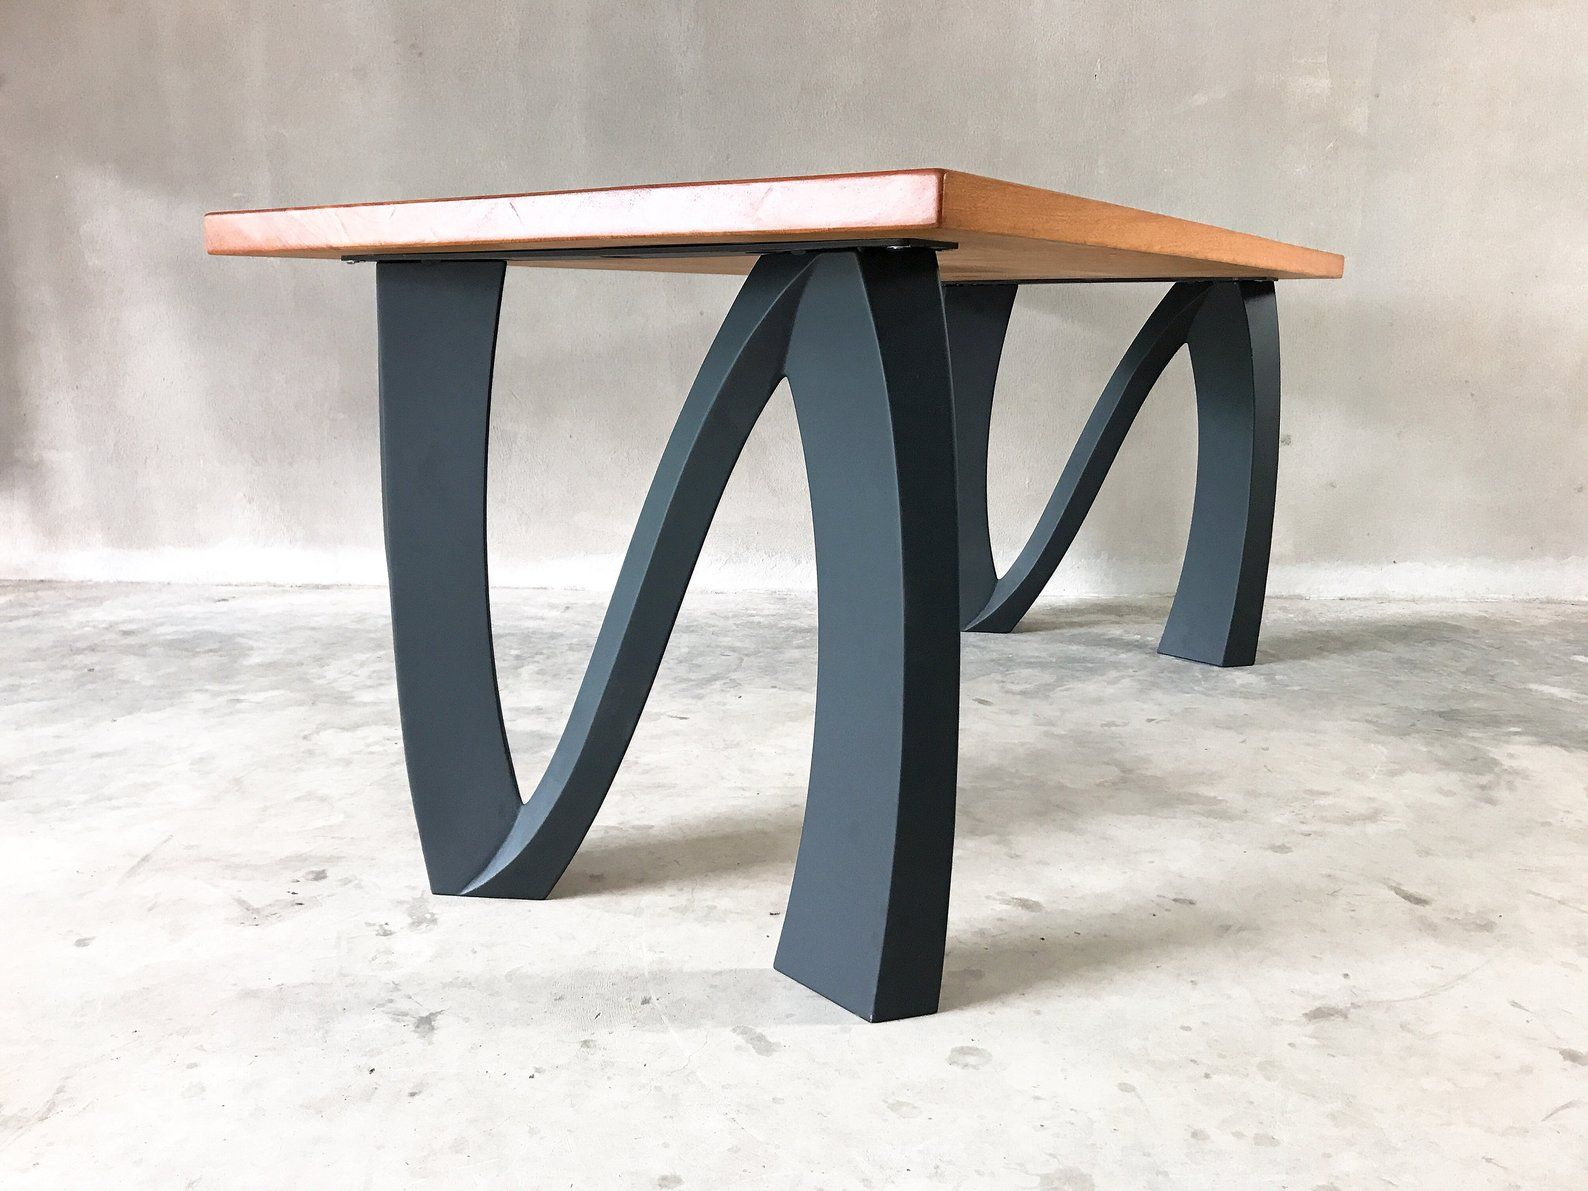 Metal Table Legs Set Of 2 Modern Industrial Dining Table Epoxy